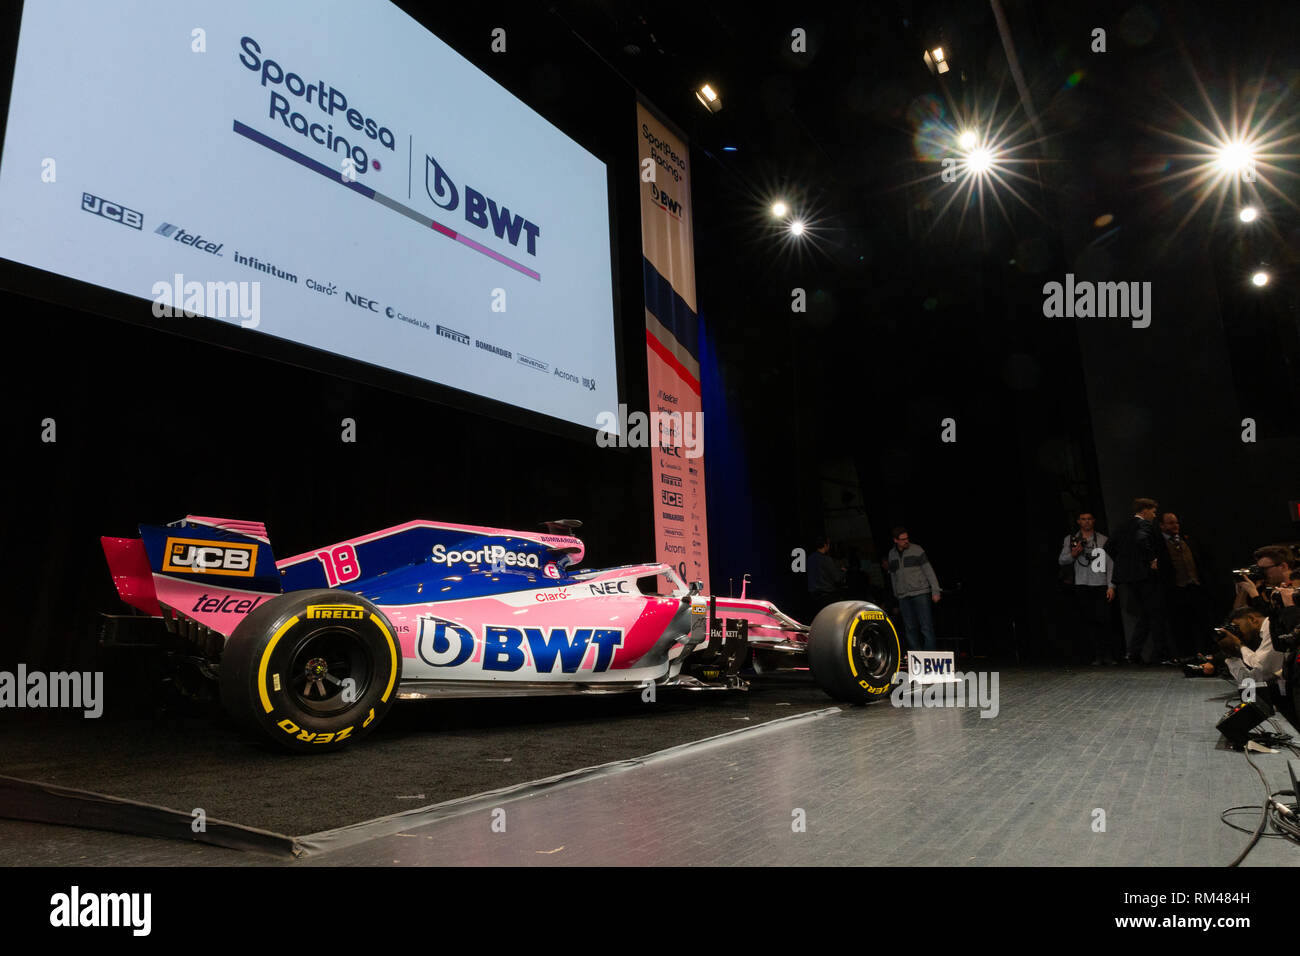 Toronto, Canada 13 Feb, 2019. SportPesa Racing Point F1 Team launch their 2019 car and livery at the John Bassett Theatre in Toronto, Canada. Credit: Gary Hebding Jr/Alamy Live News - Stock Image